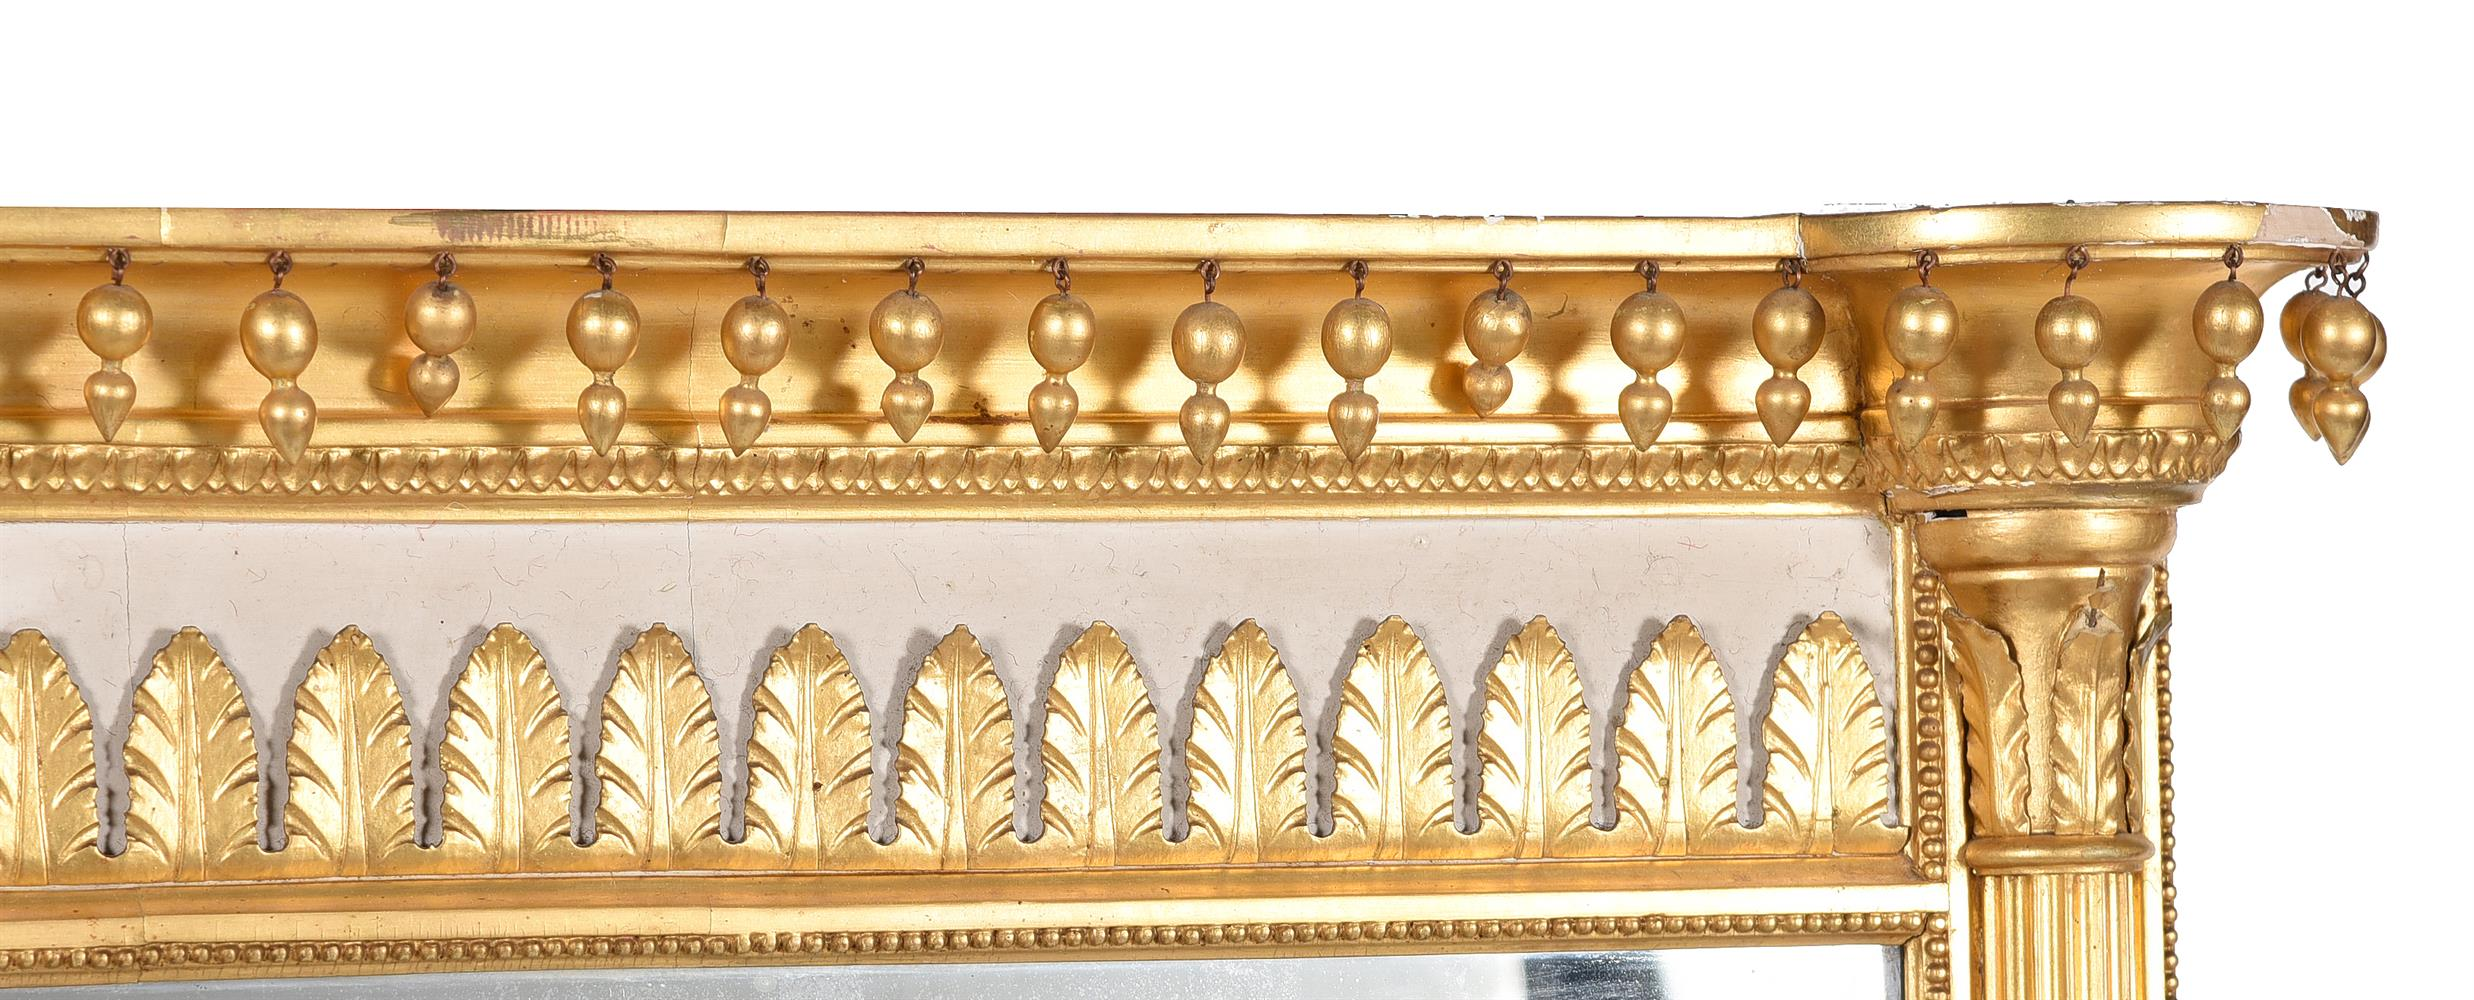 A PAIR OF GEORGE III GILTWOOD AND CREAM PAINTED WALL MIRRORS, CIRCA 1800 - Image 3 of 4